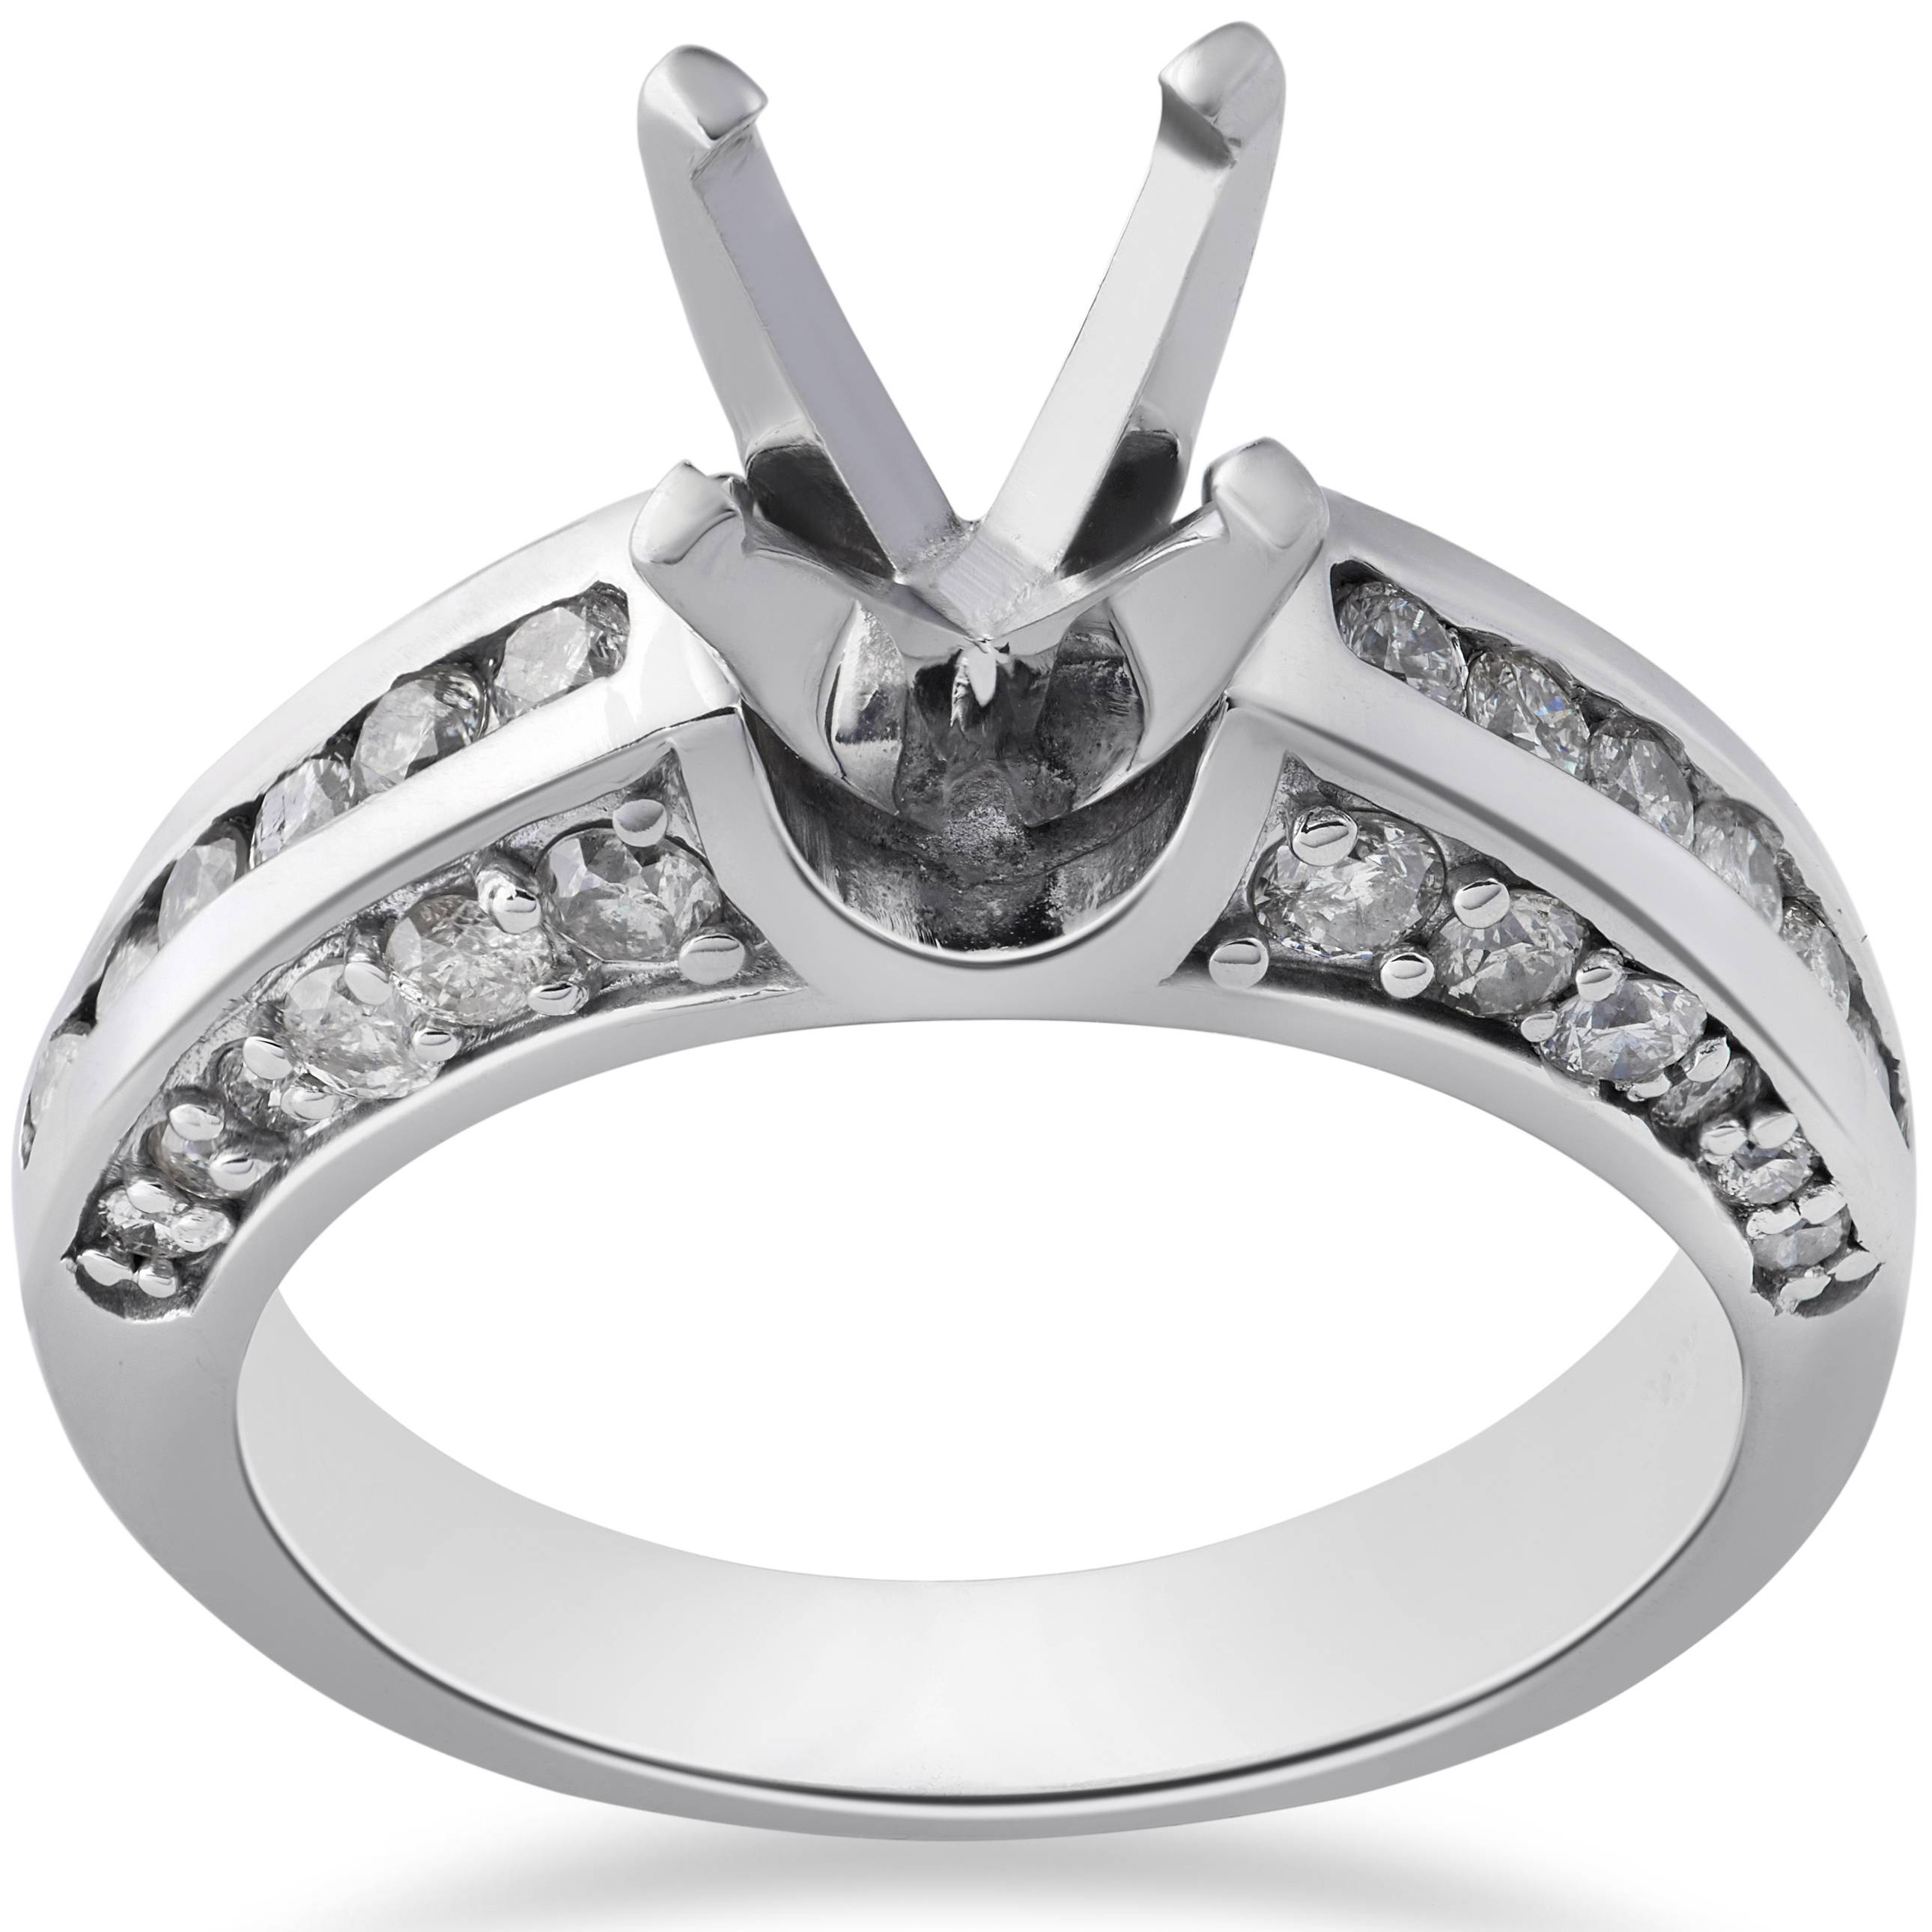 diamond engagement ring setting 1 carat 14k white gold. Black Bedroom Furniture Sets. Home Design Ideas